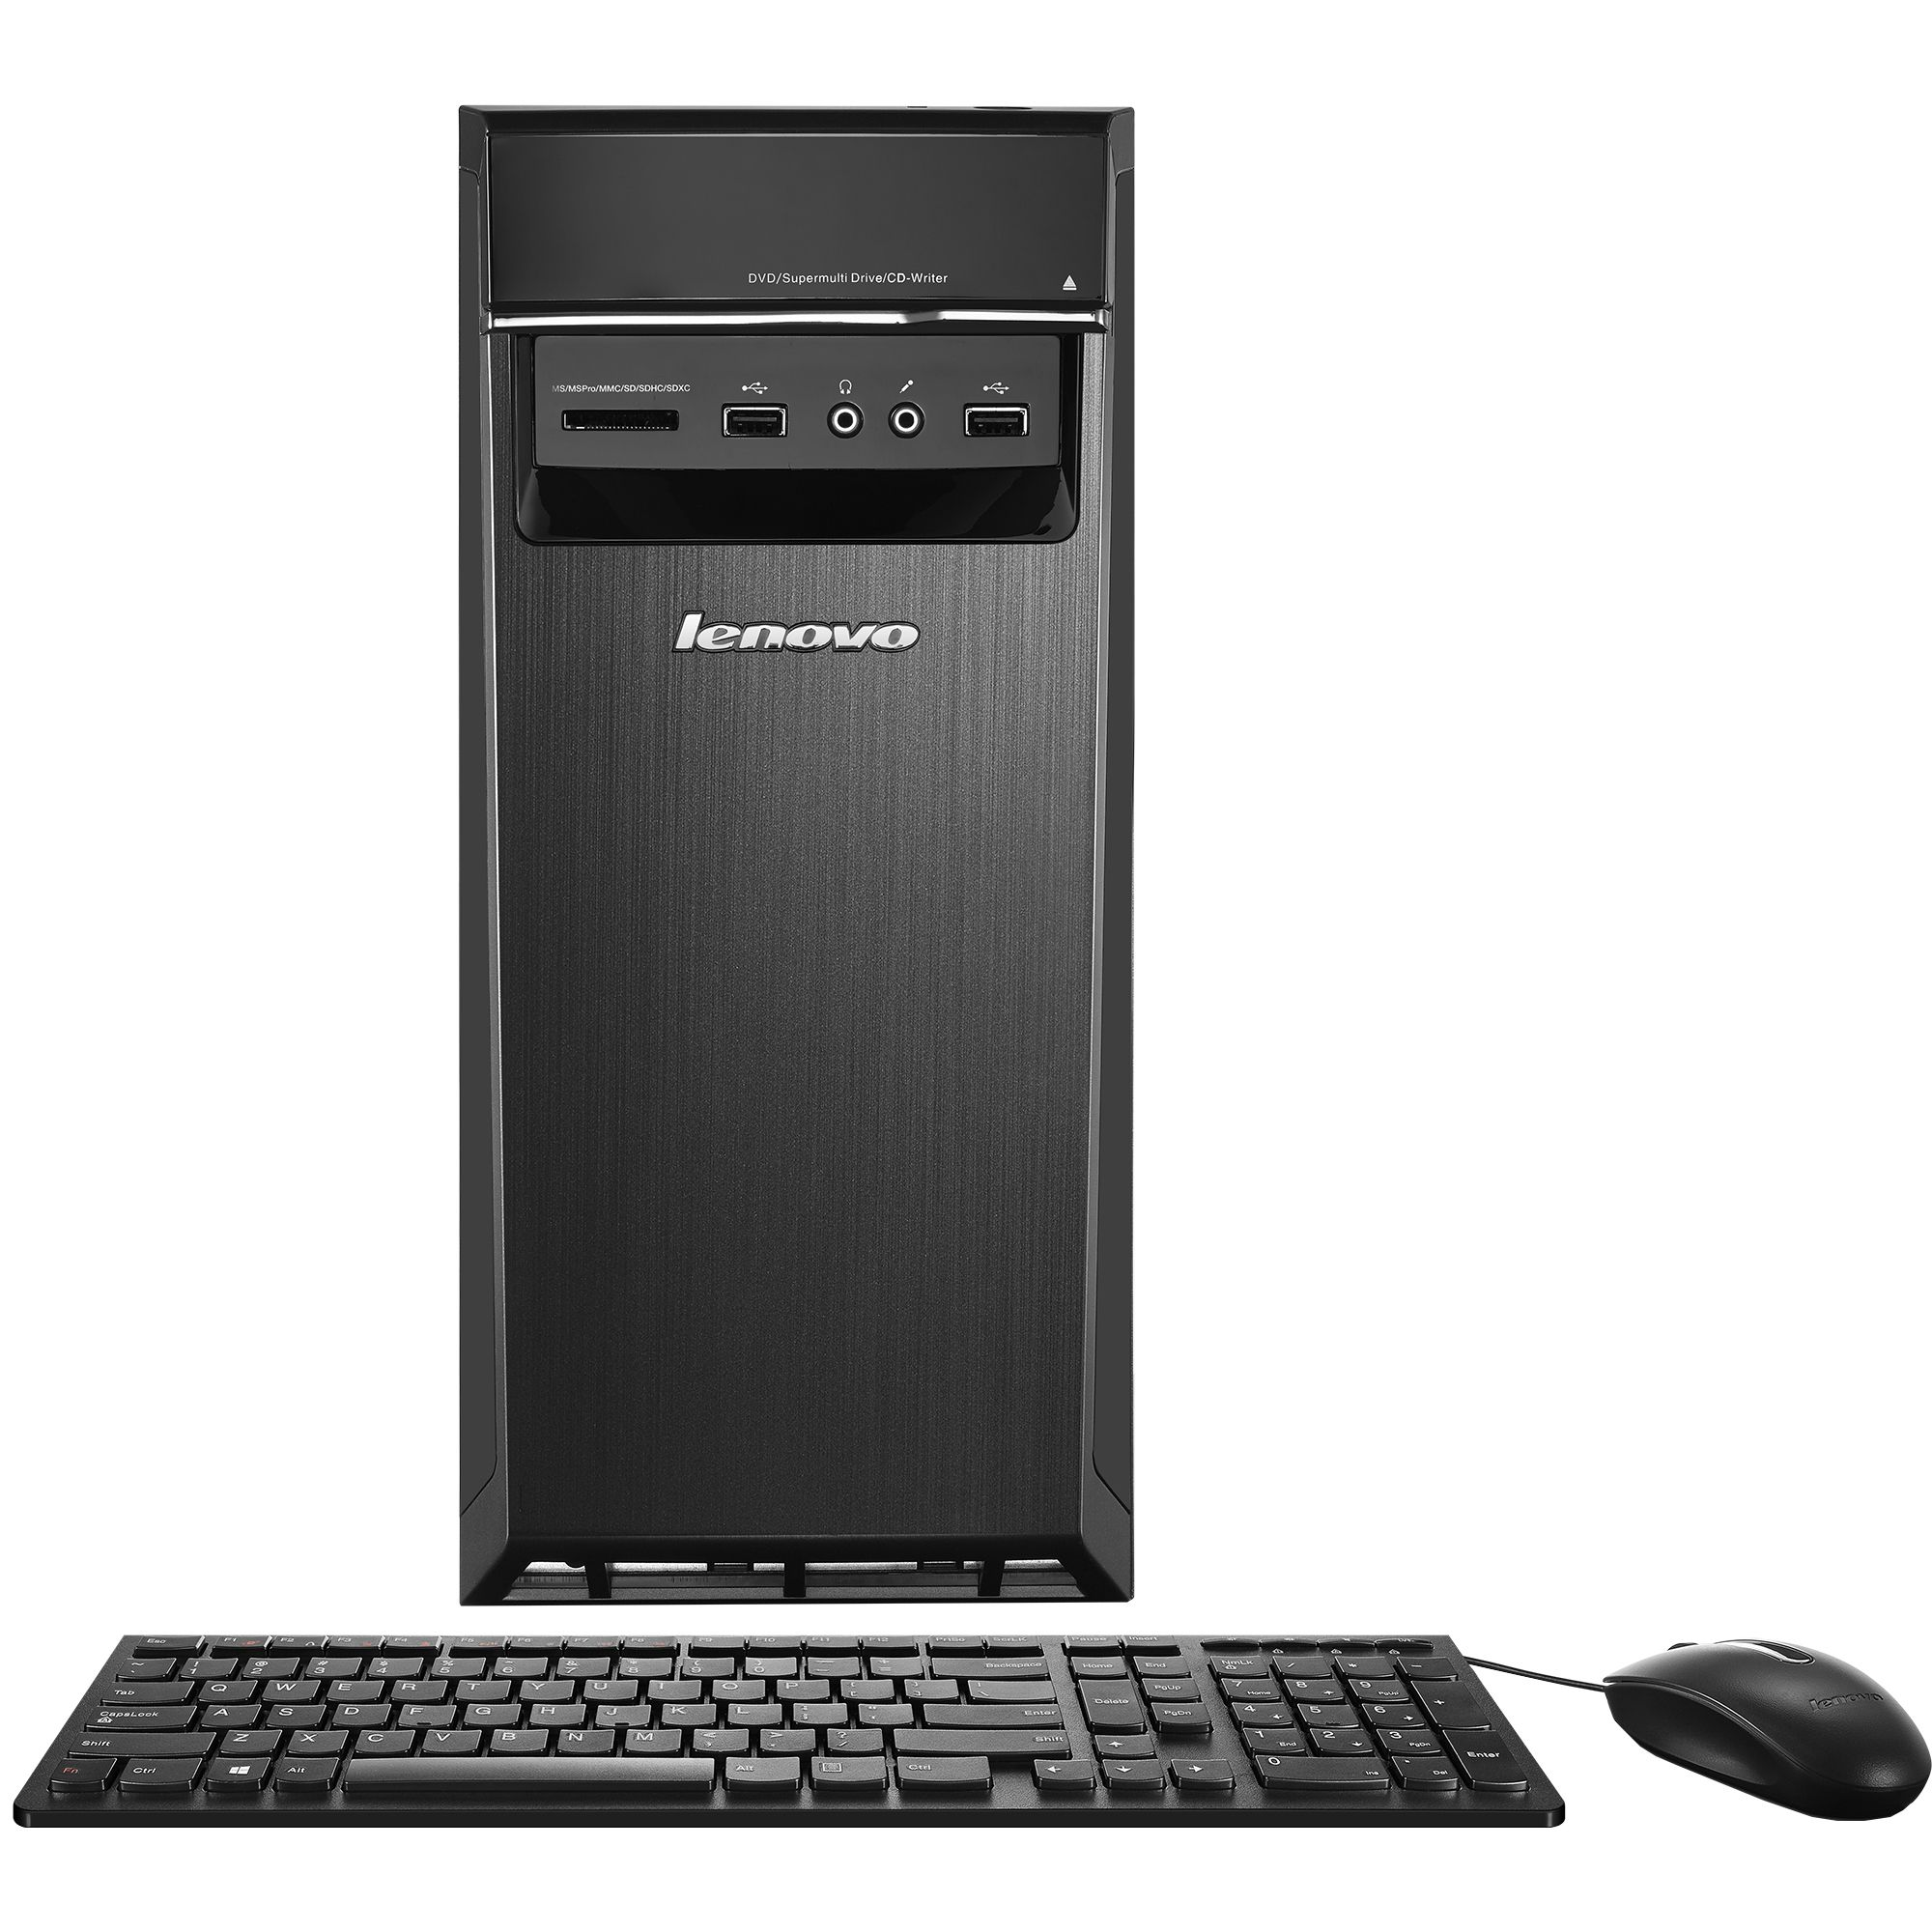 Настолен компютър PC Lenovo IdeaCentre 300-20 c процесор Intel® Core™ i3-6100 3.70GHz, Skylake™, 4GB, 1TB, DVD-RW, Intel® HD Graphics, Free DOS, Мишка + Клавиатура, Black